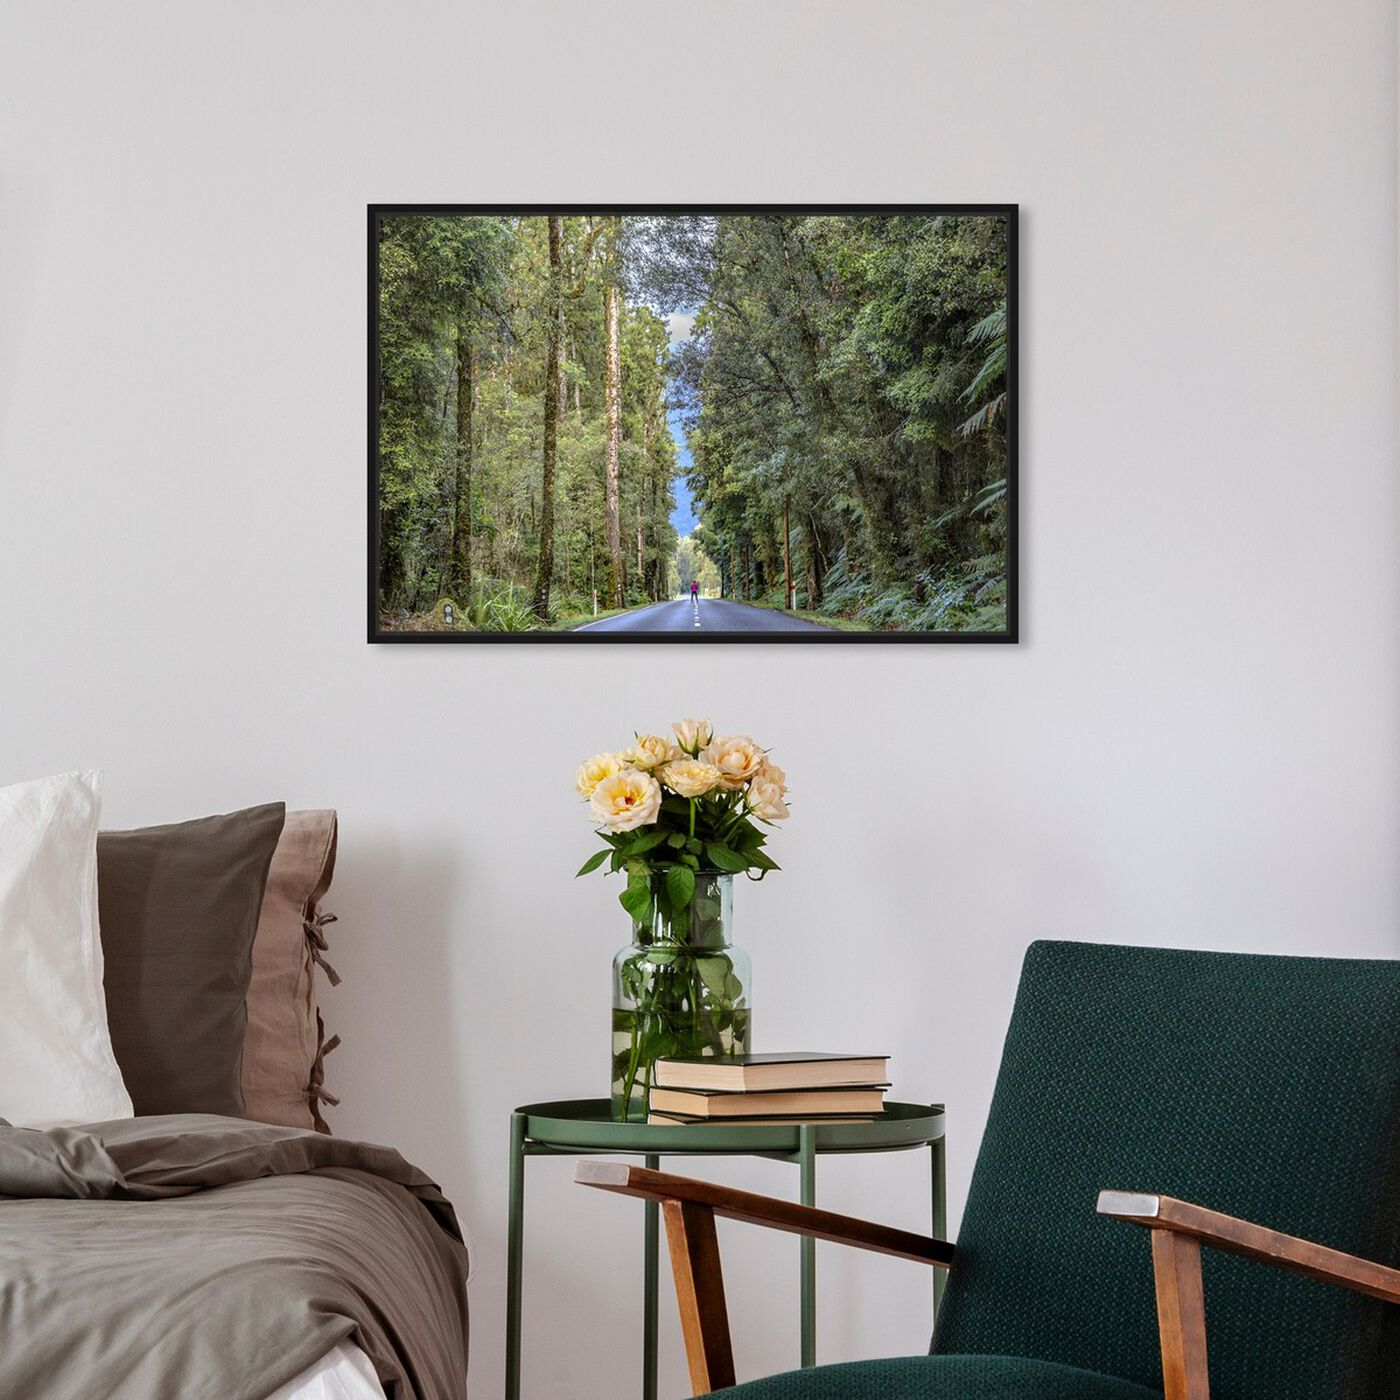 Hanging view of Curro Cardenal - Road to Our Future featuring nature and landscape and forest landscapes art.